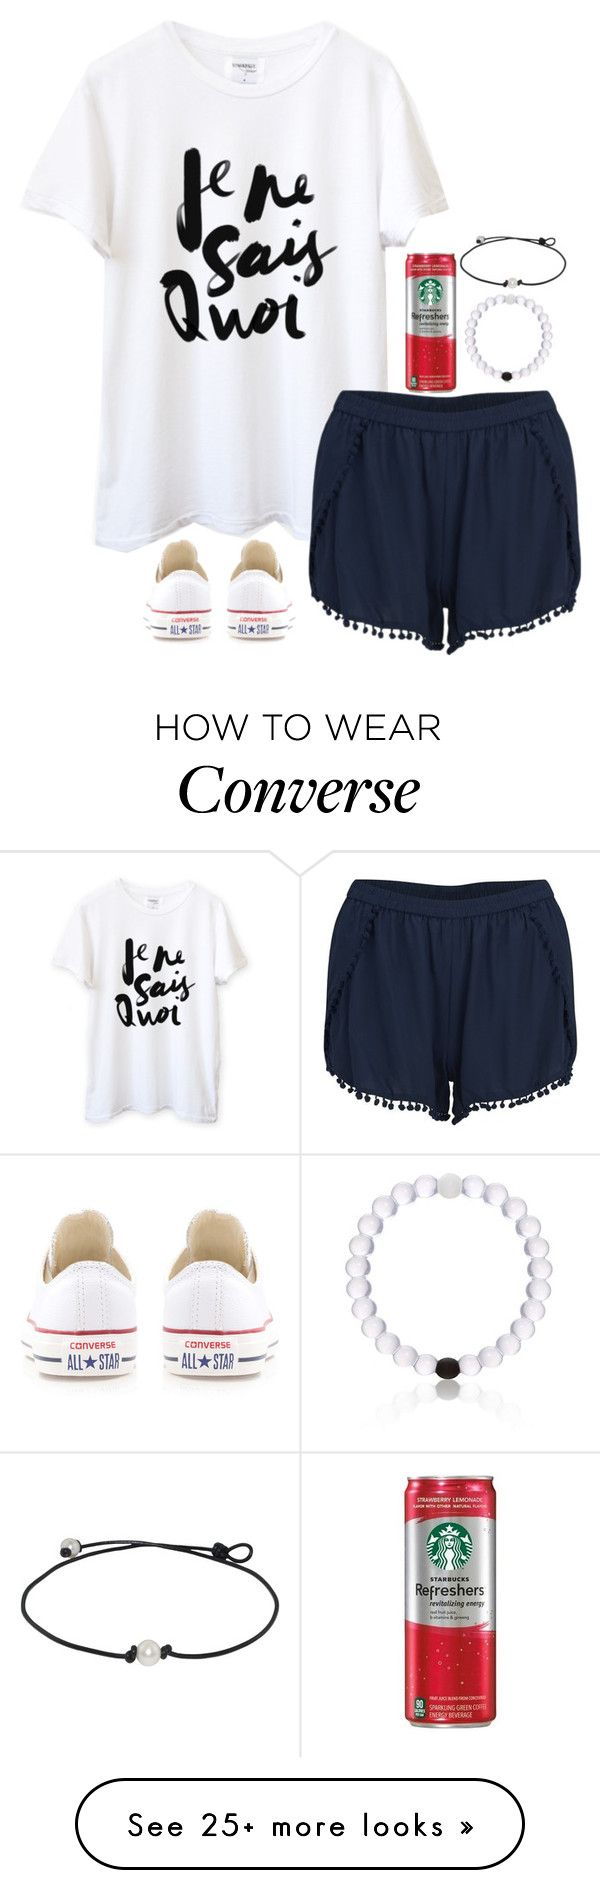 """~1k by Sunday people!!~"" by lindsaygreys on Polyvore featuring Converse and VILA"